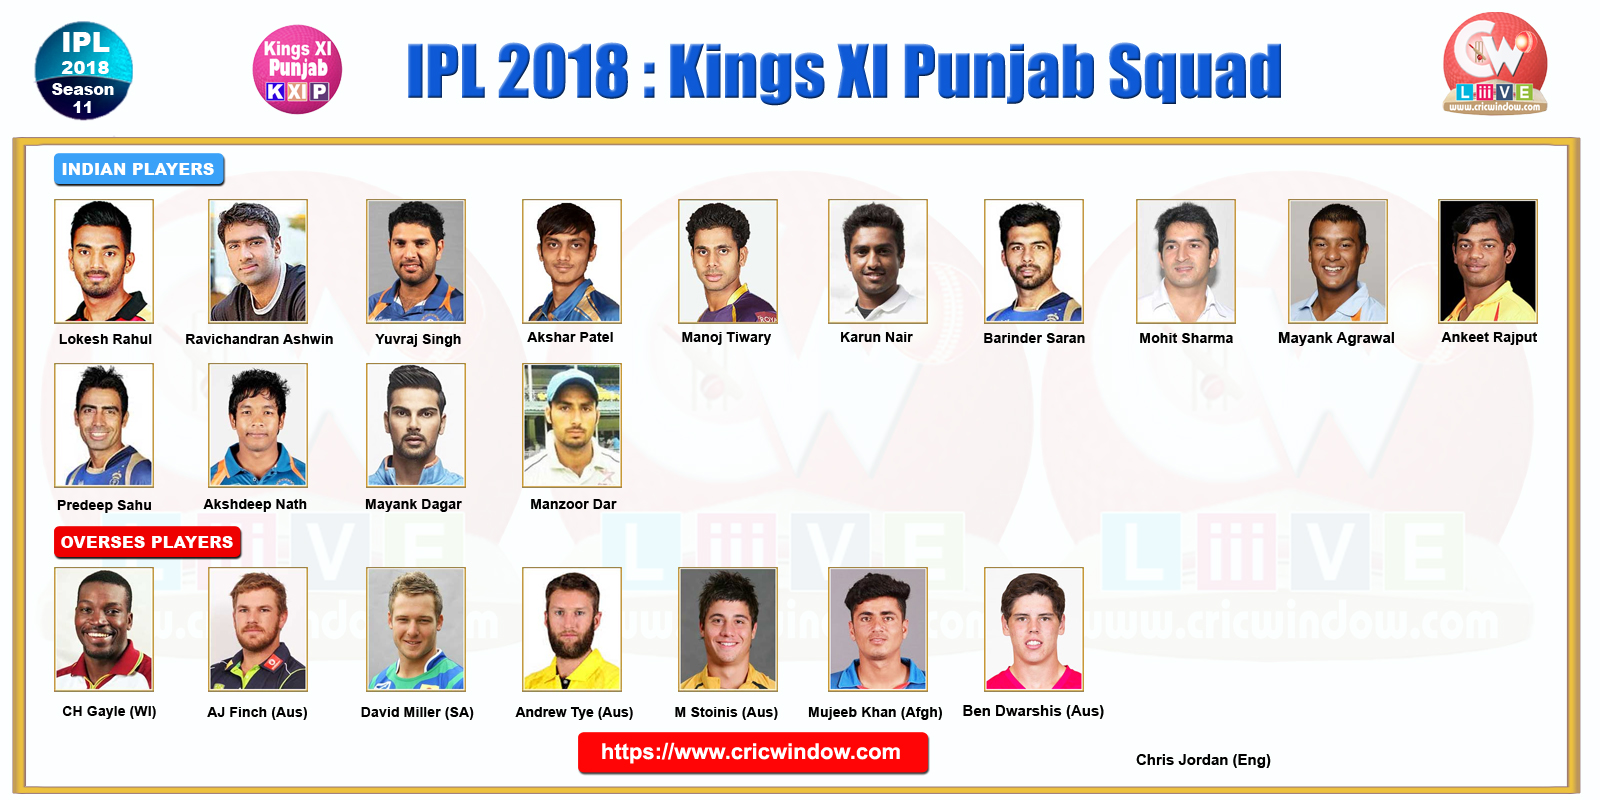 Kings XI Punjab team 2018